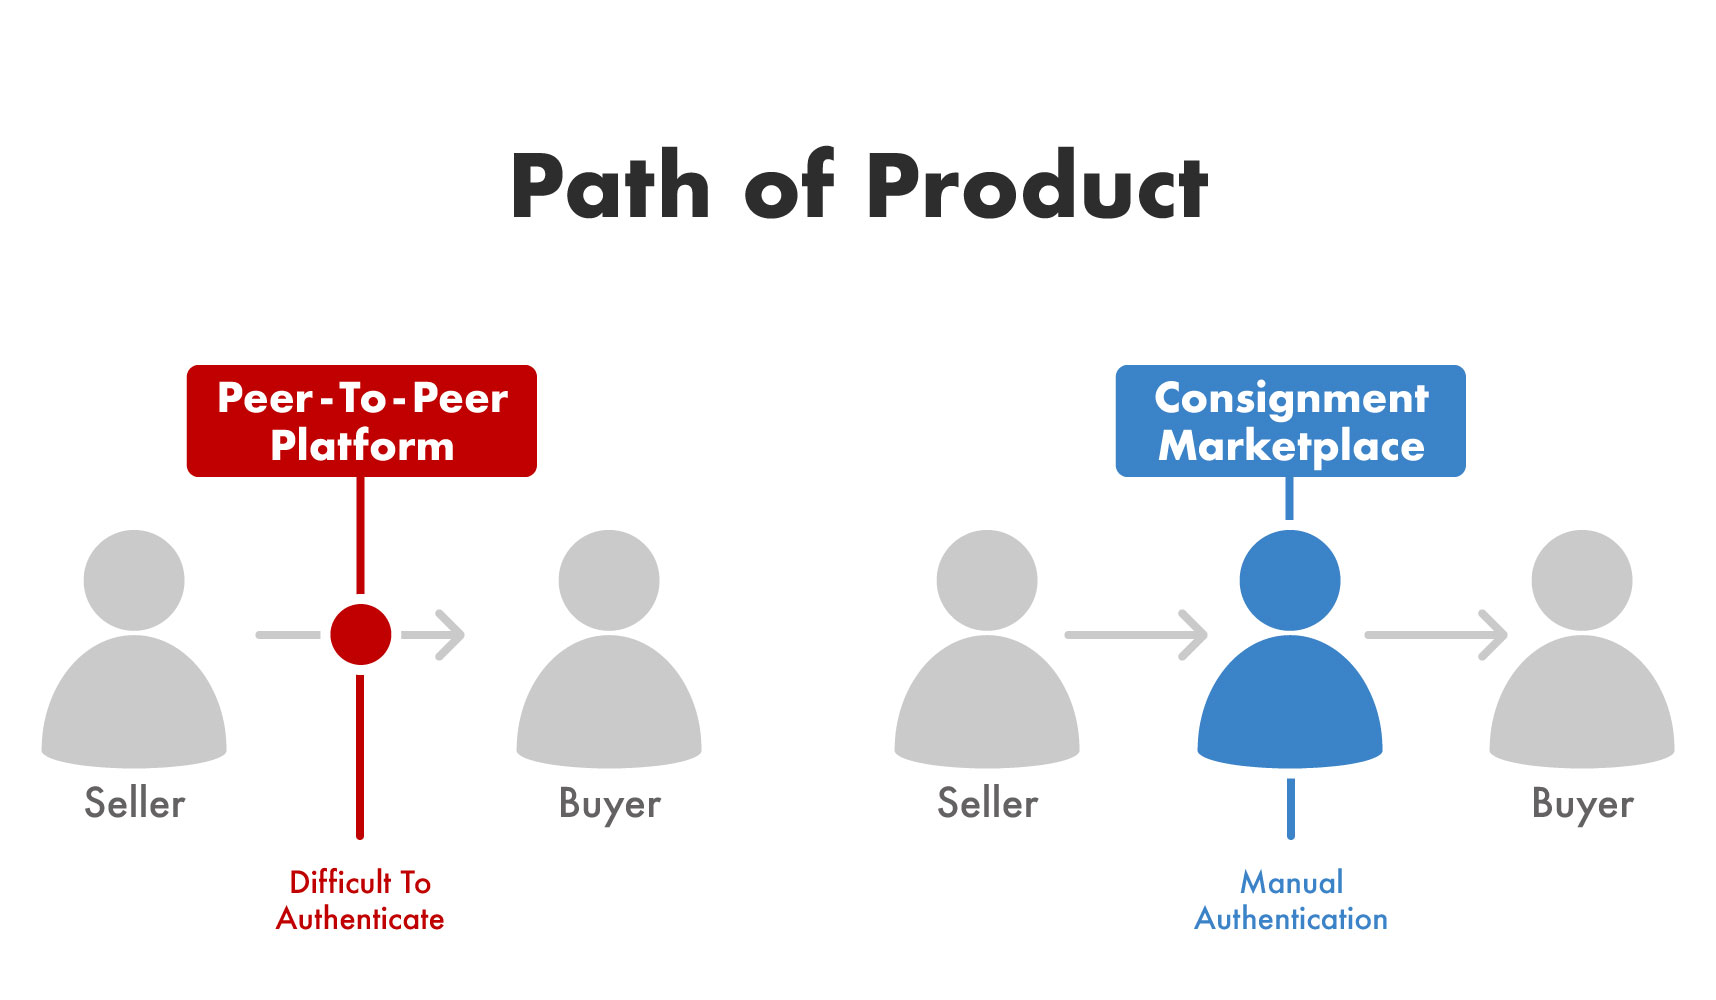 P2P platforms and consignment marketplaces both have difficulties authenticating products before they go from the seller to the buyer.